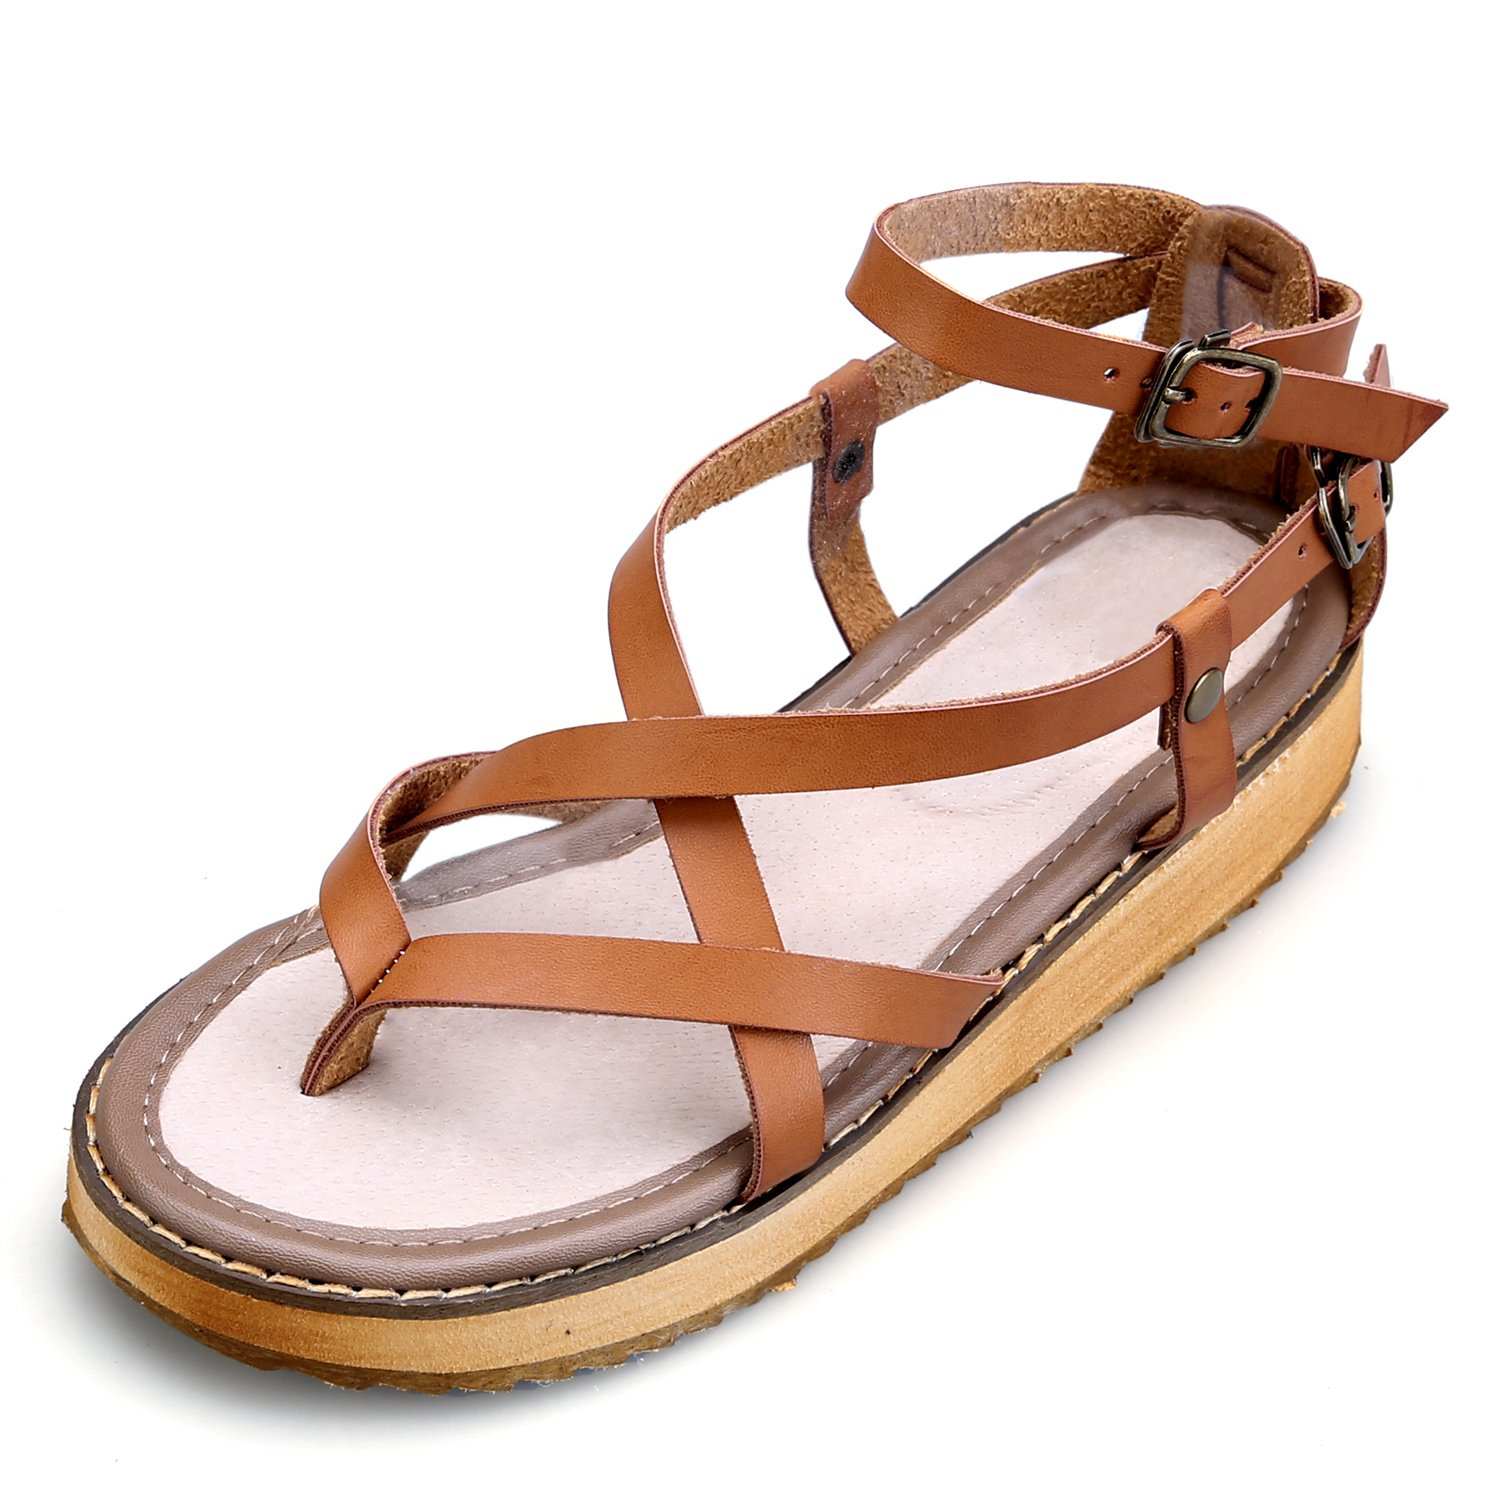 Smilun Girl's Fashion Strappy Roman Sandals Wedge Sandals Flip Flops Thongs Open Toe Sandals Flip Flops Roman Sandal Summer Sandals Brown US6